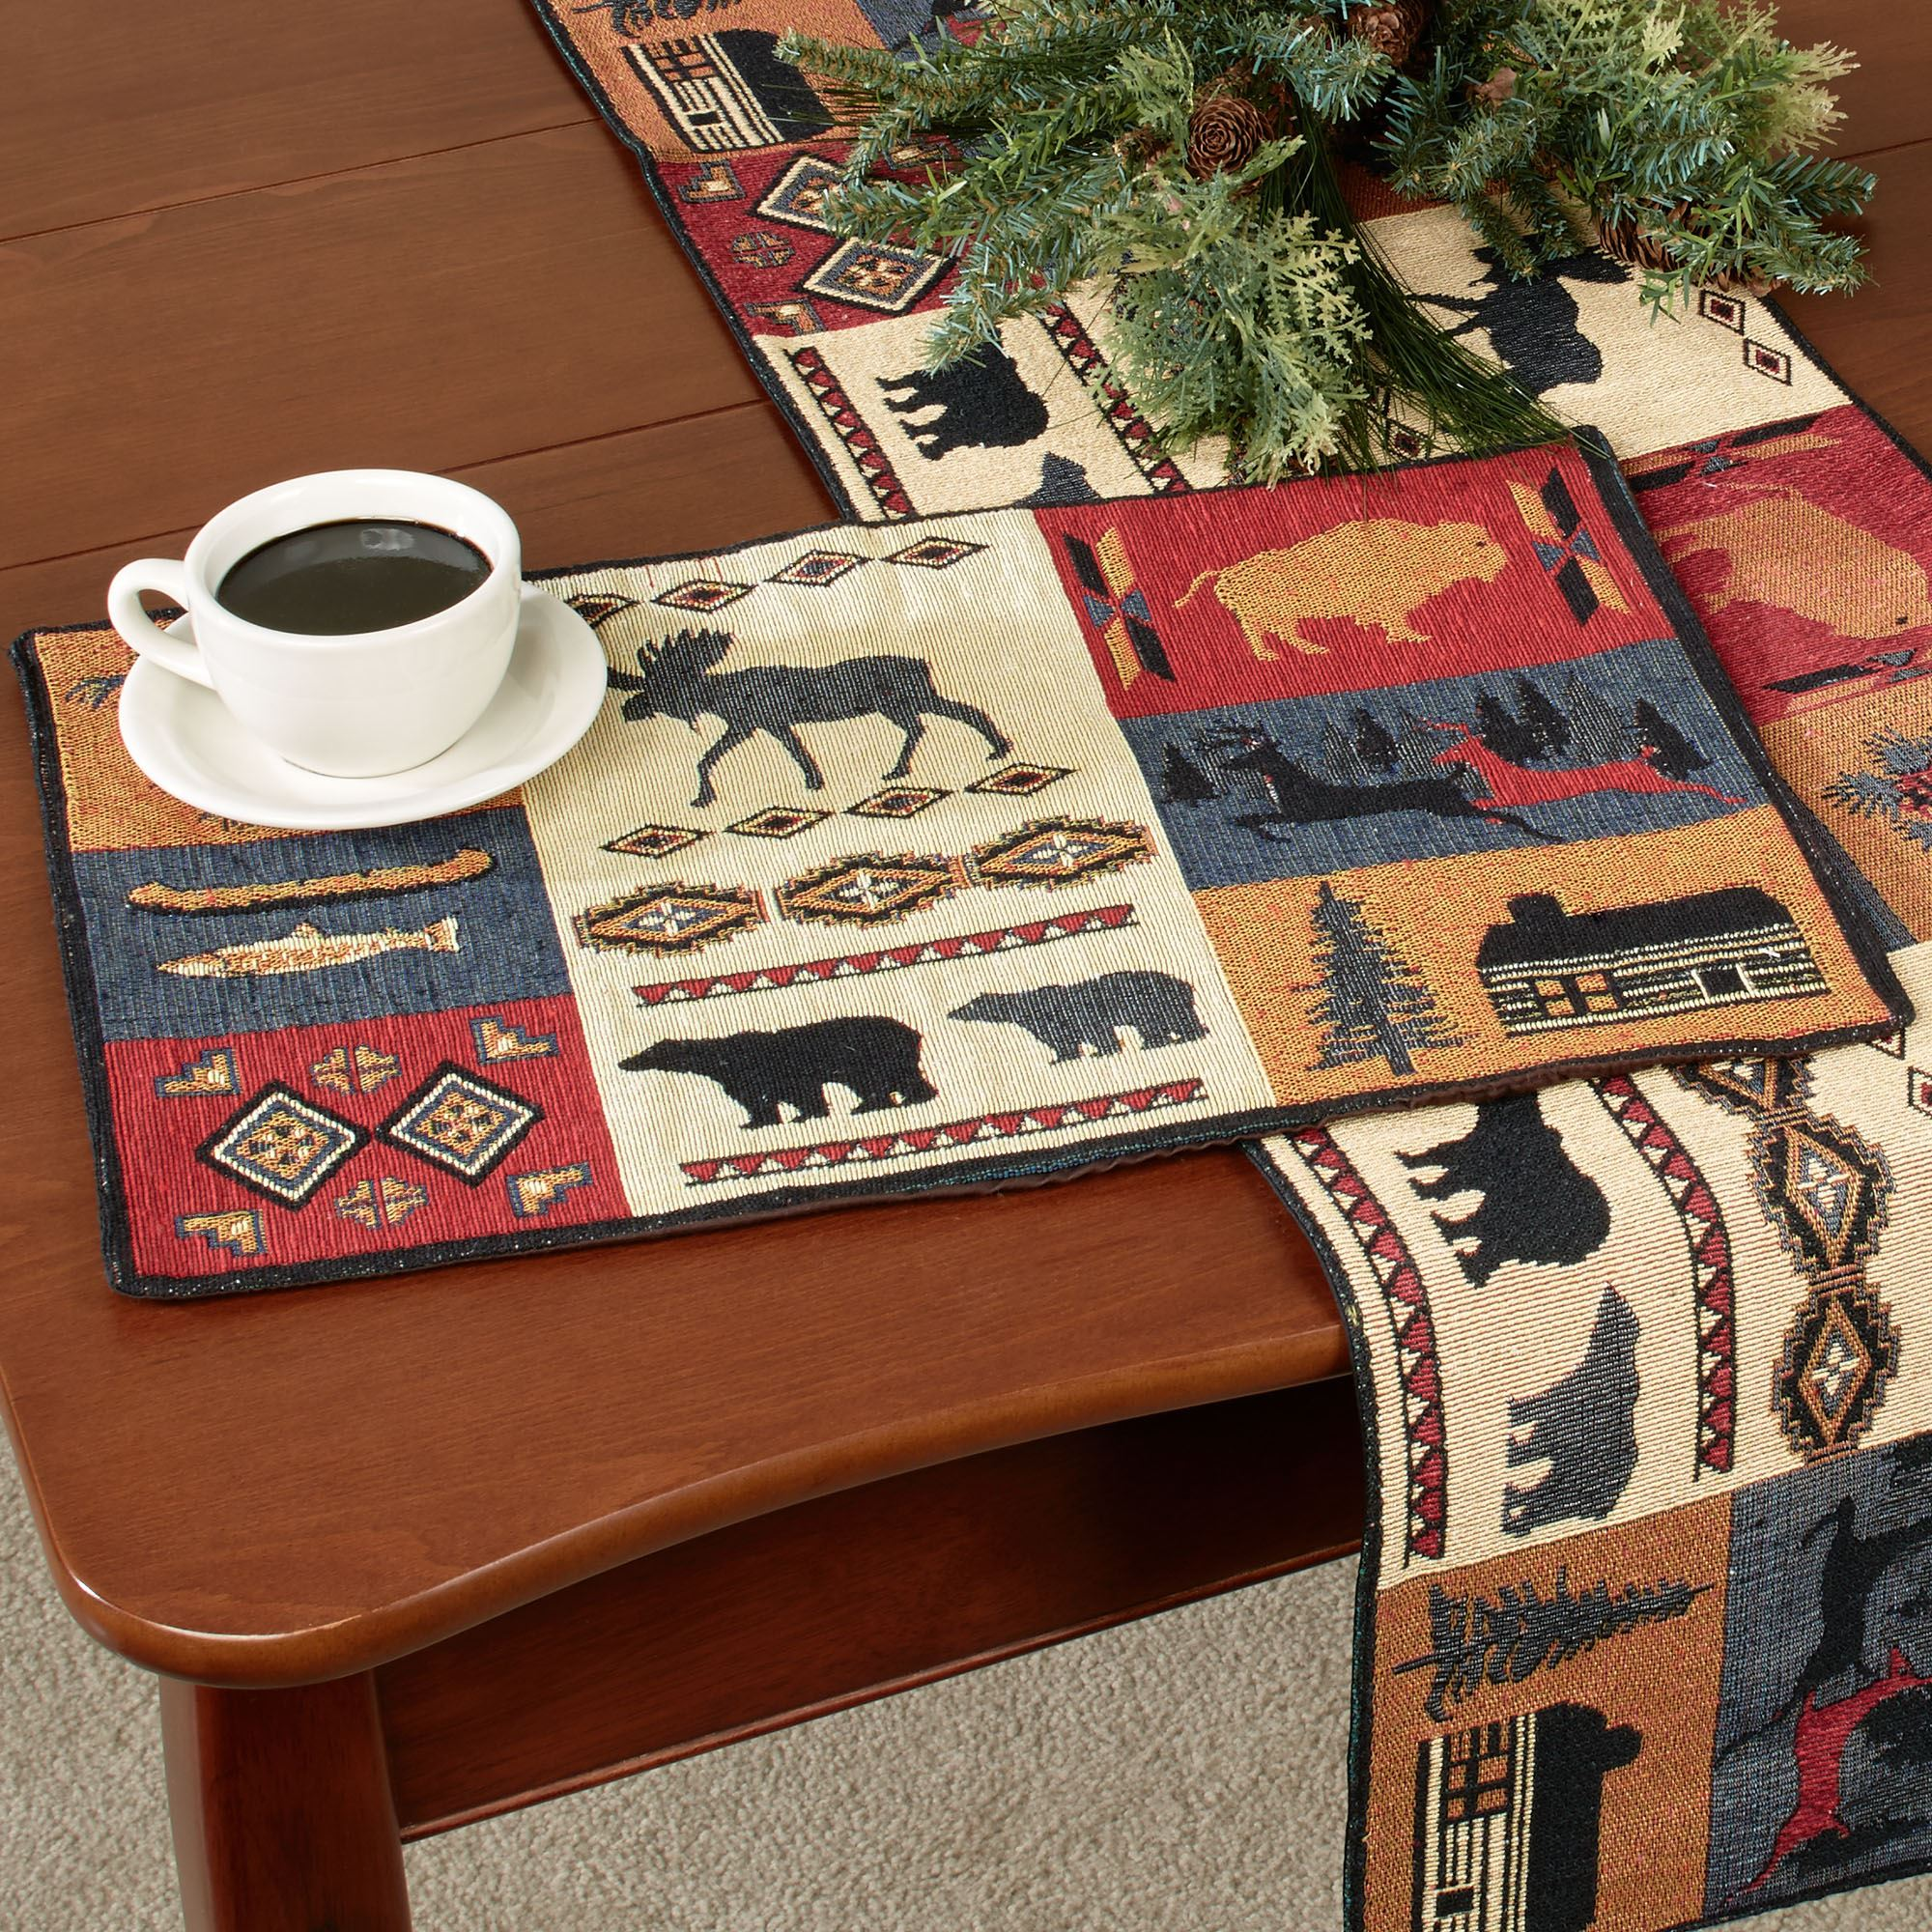 Rustic Lodge Table Linens